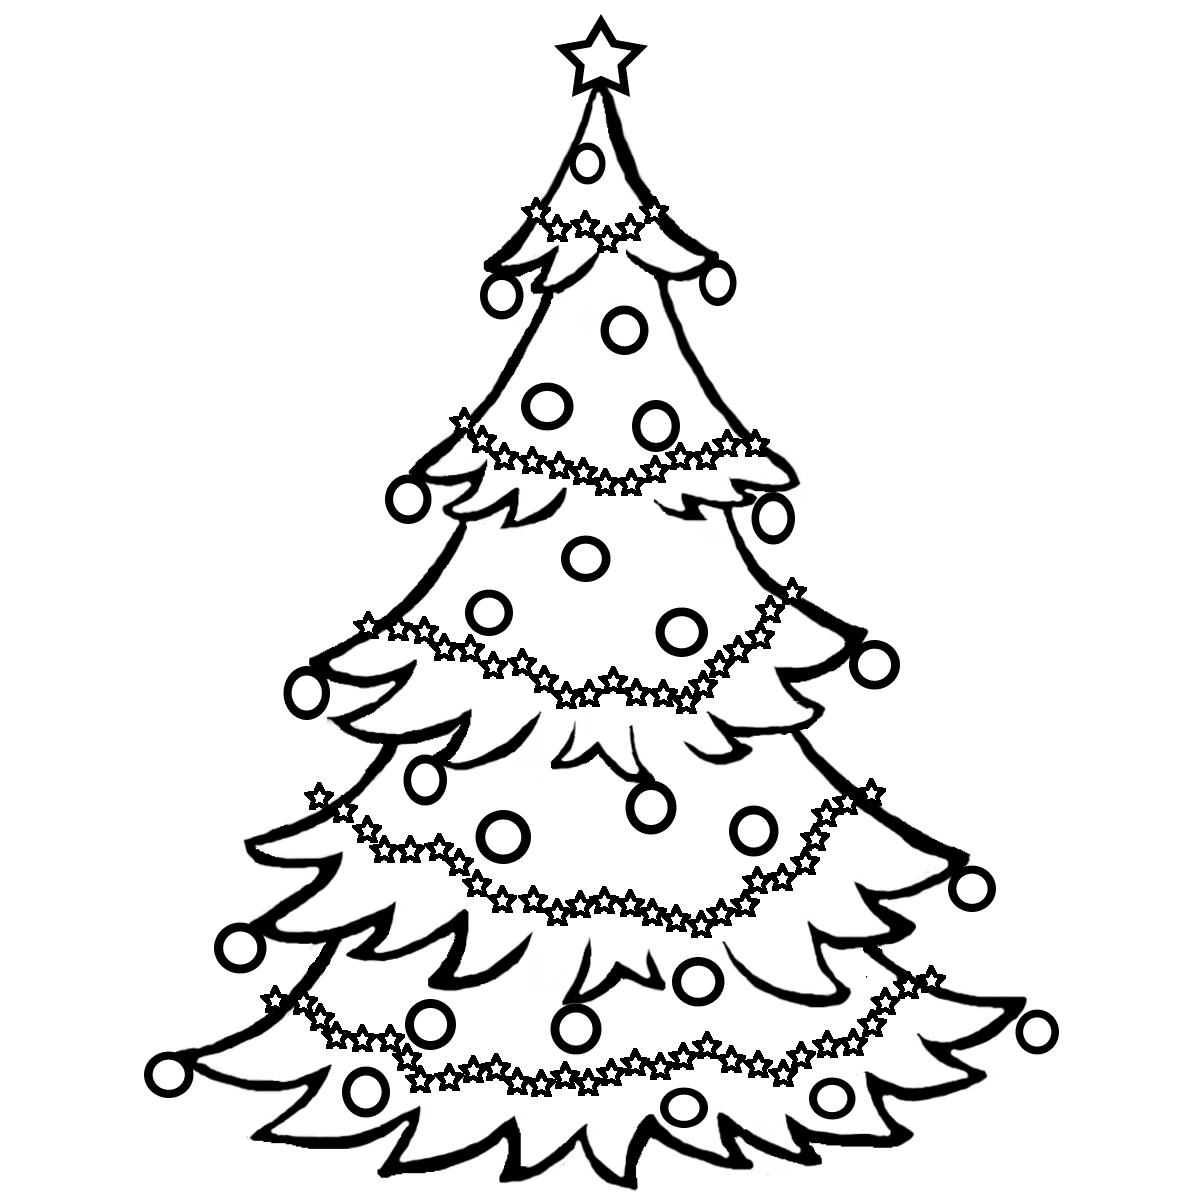 clip art christmas tree outline clipart panda free. Black Bedroom Furniture Sets. Home Design Ideas